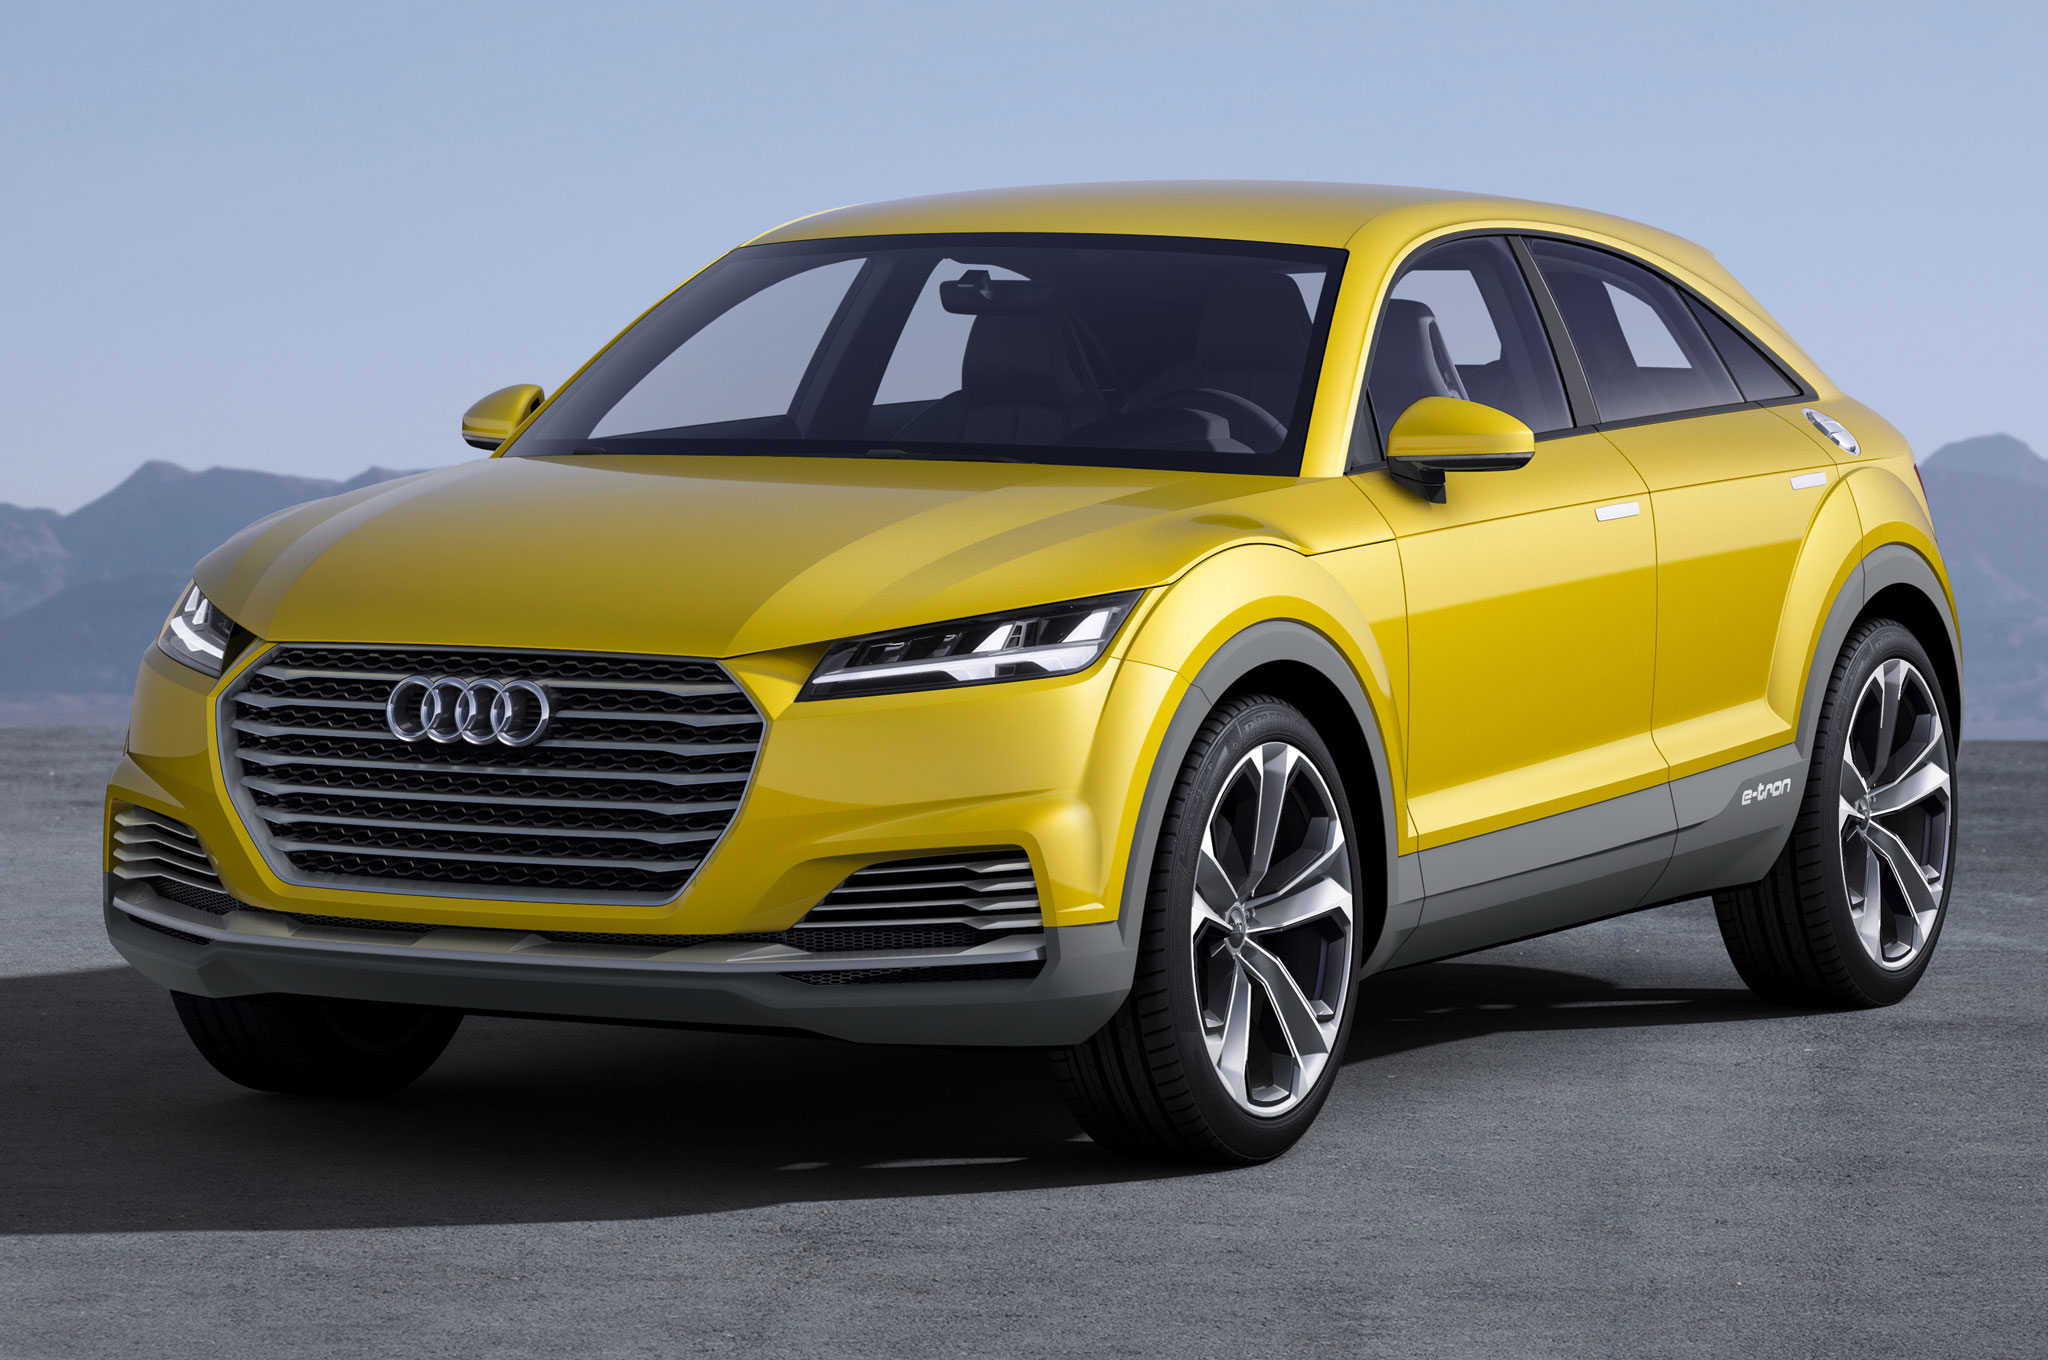 We Hear: Audi TT Offroad Concept Could Become a Thing